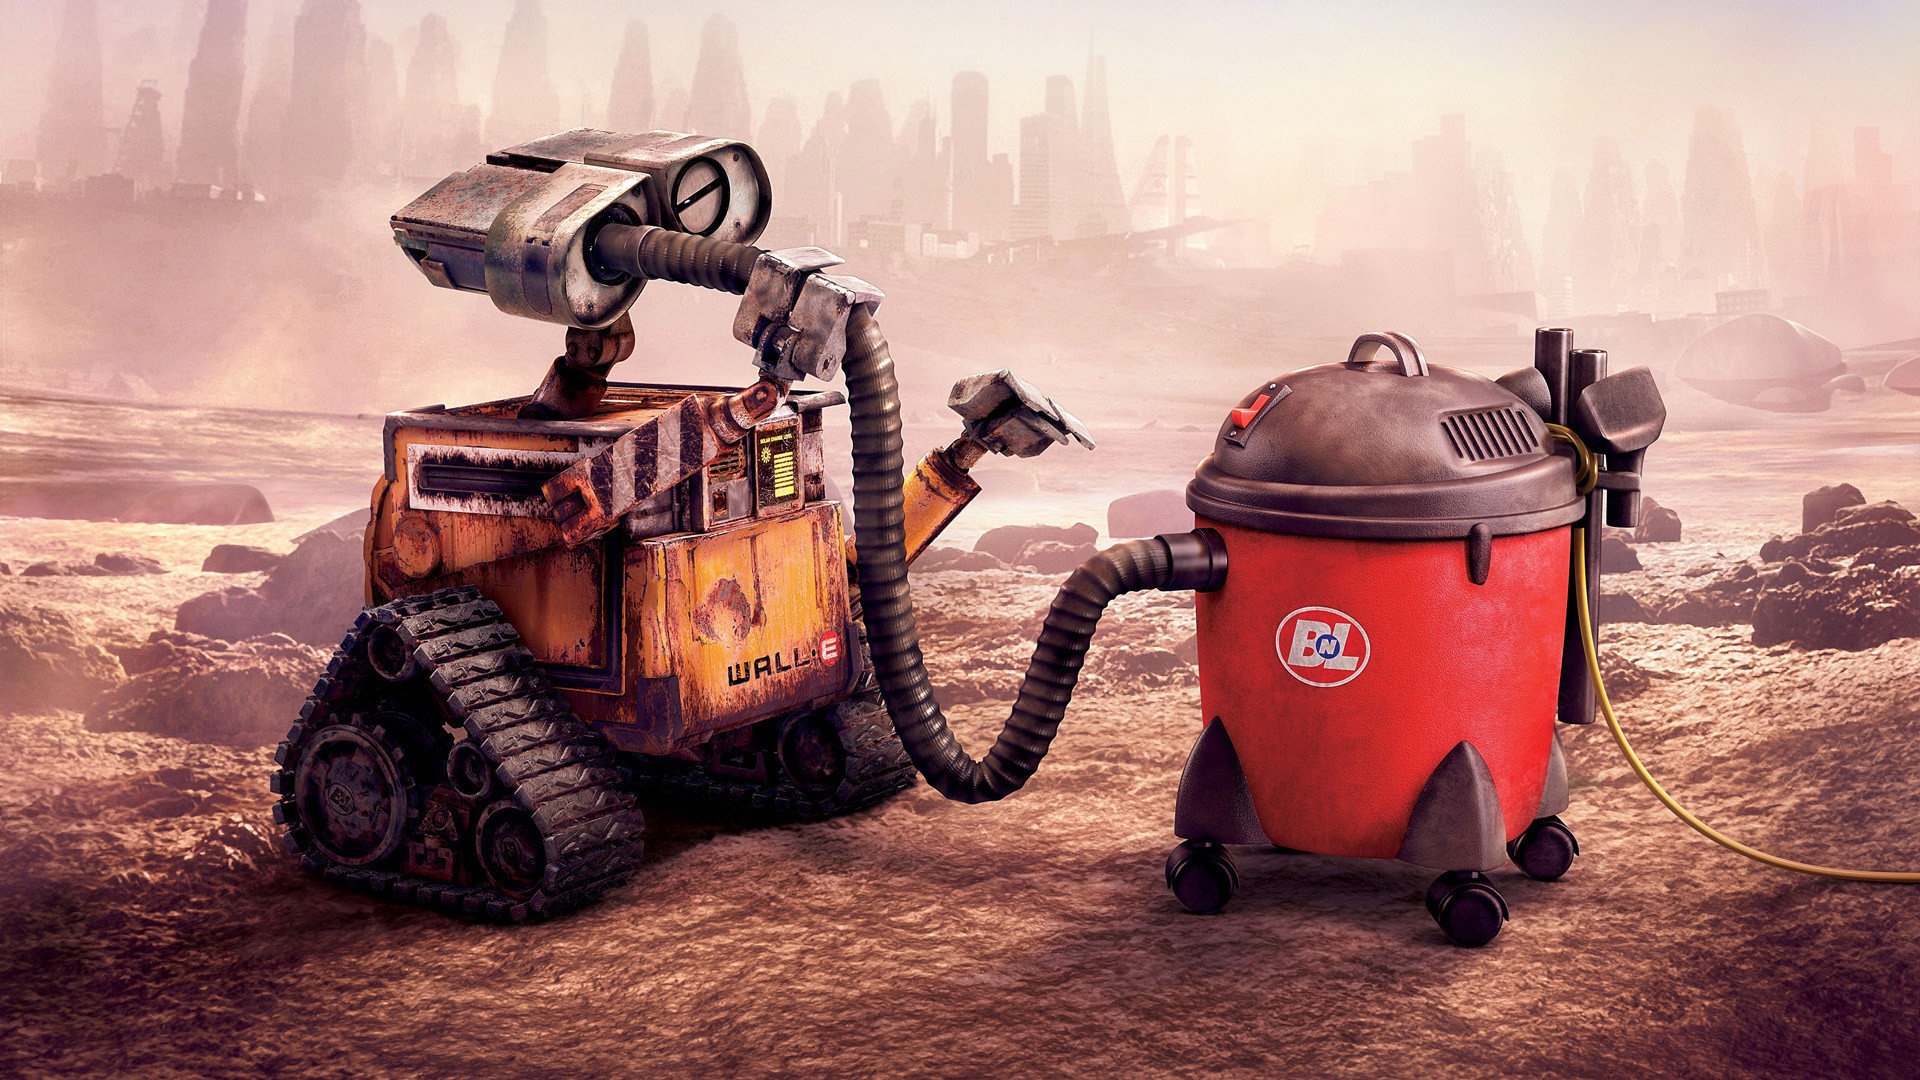 Free Wall.E high quality background ID:25951 for full hd computer